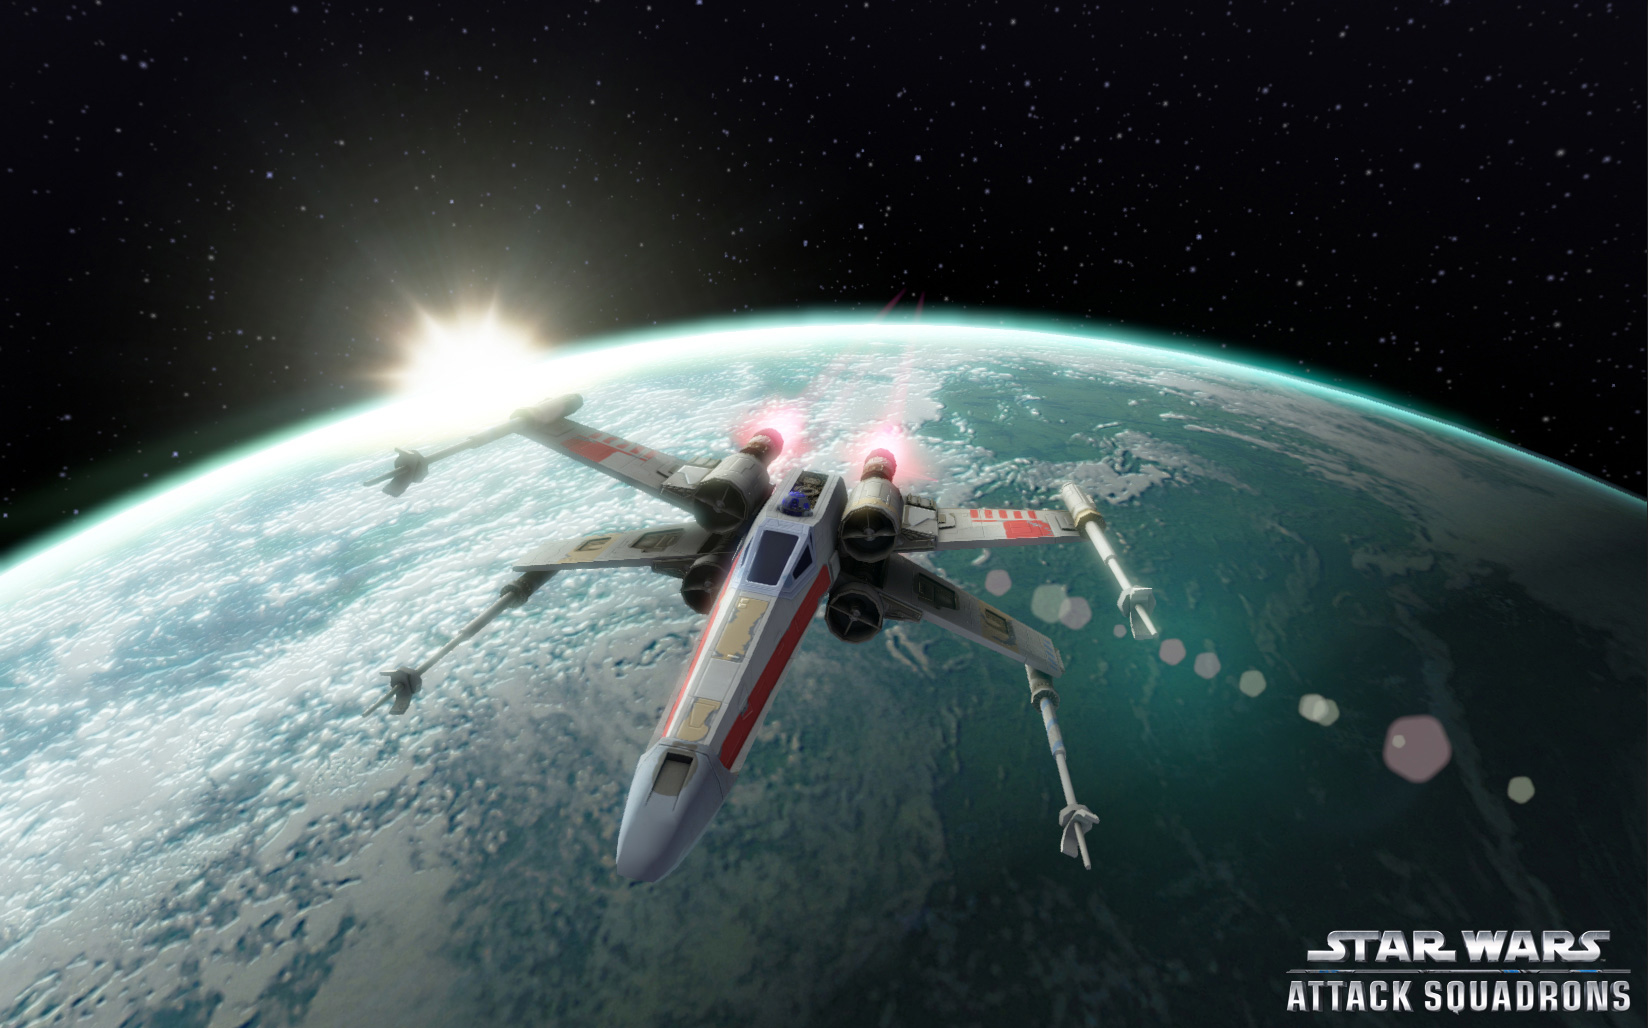 Star Wars: Attack Squadrons is free space combat game for PC, trailer inside | VG247